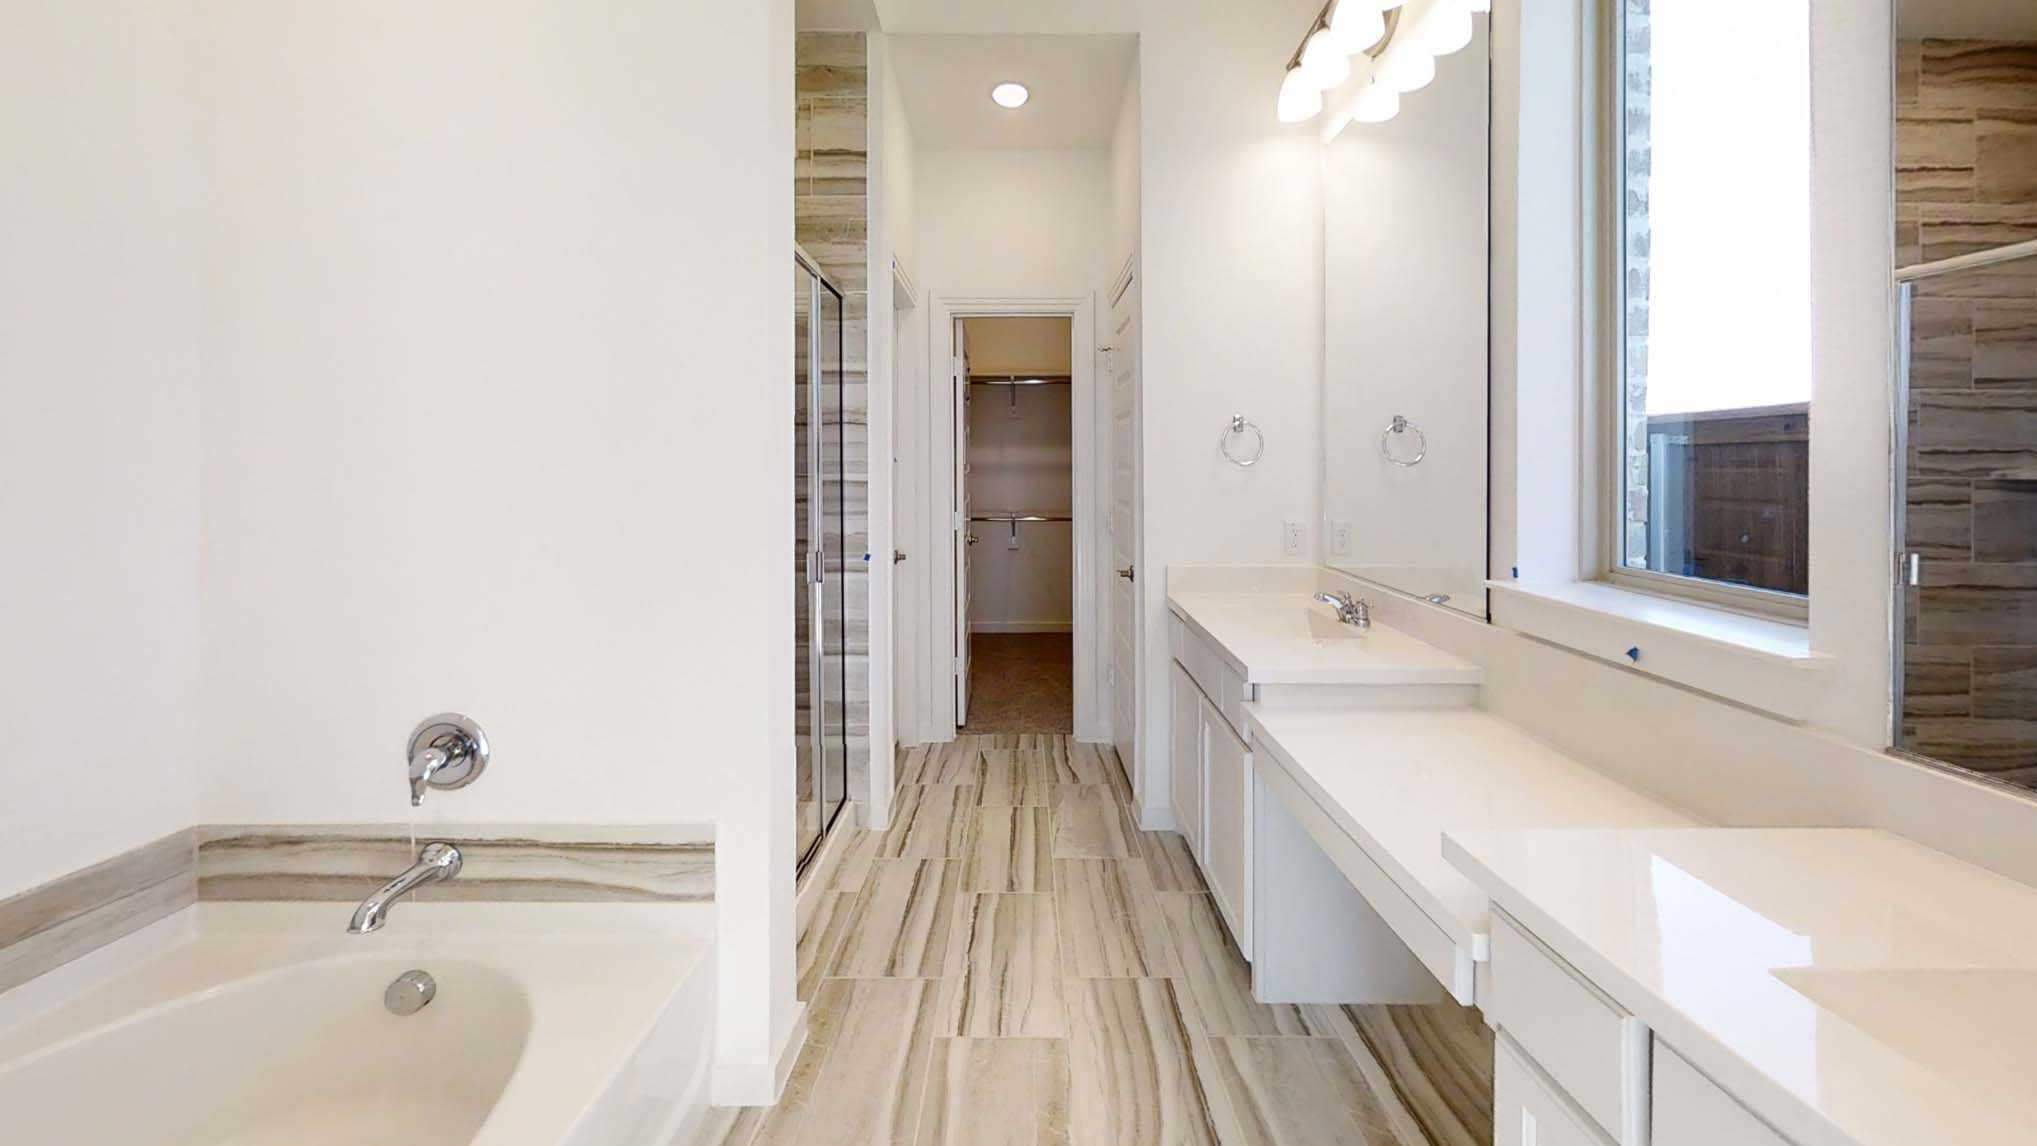 Bathroom featured in the Plan Wakefield By Highland Homes in Dallas, TX